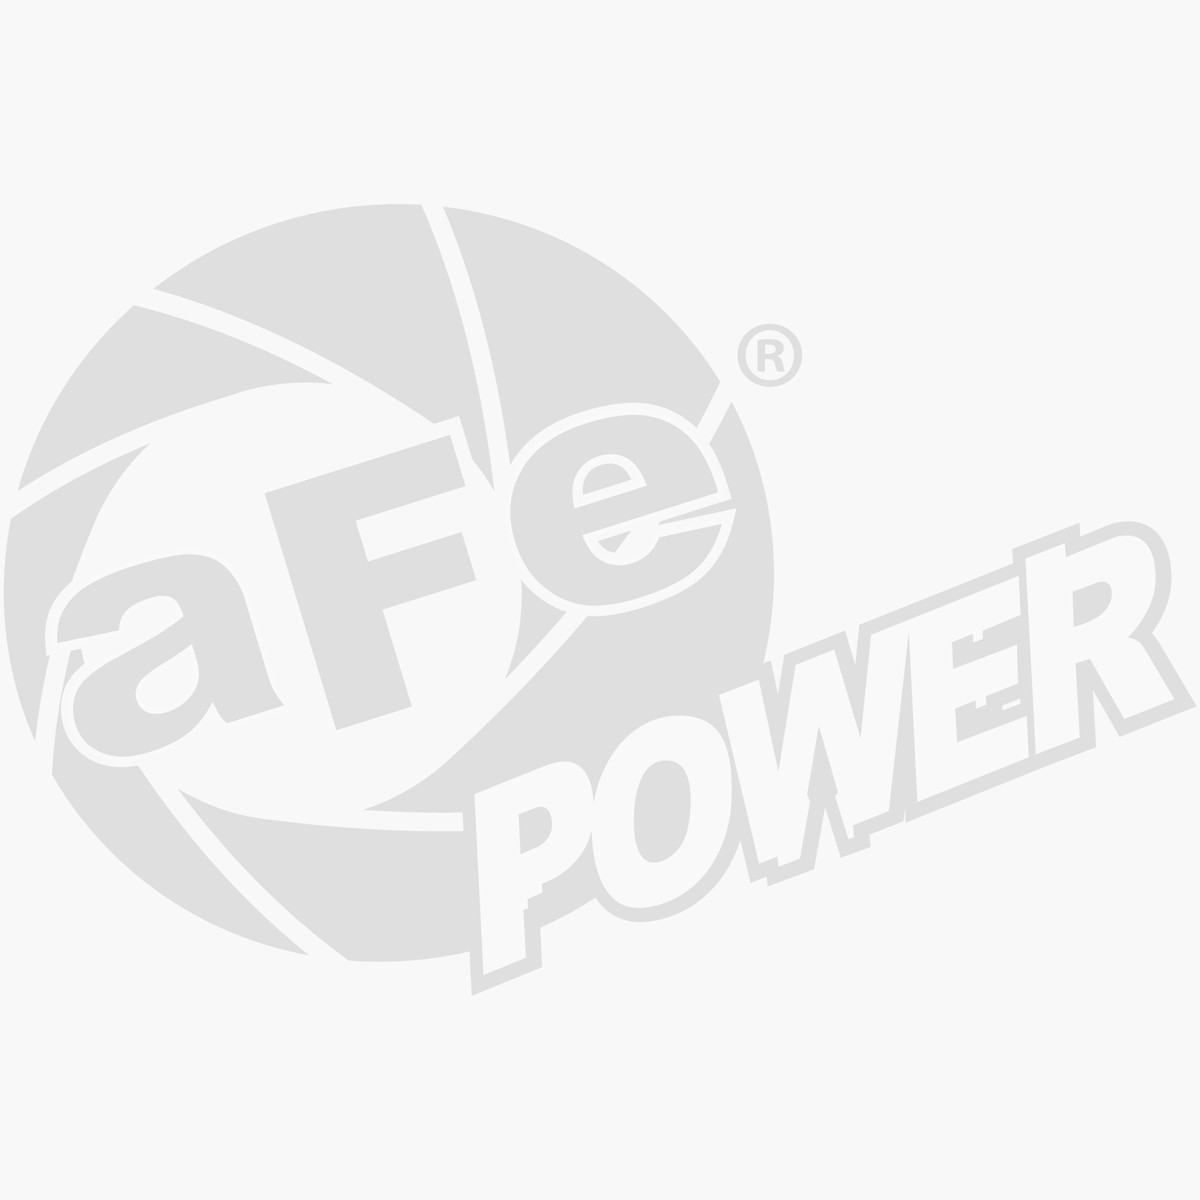 aFe POWER 18-11104 Round Racing Pro 5R Air Filter